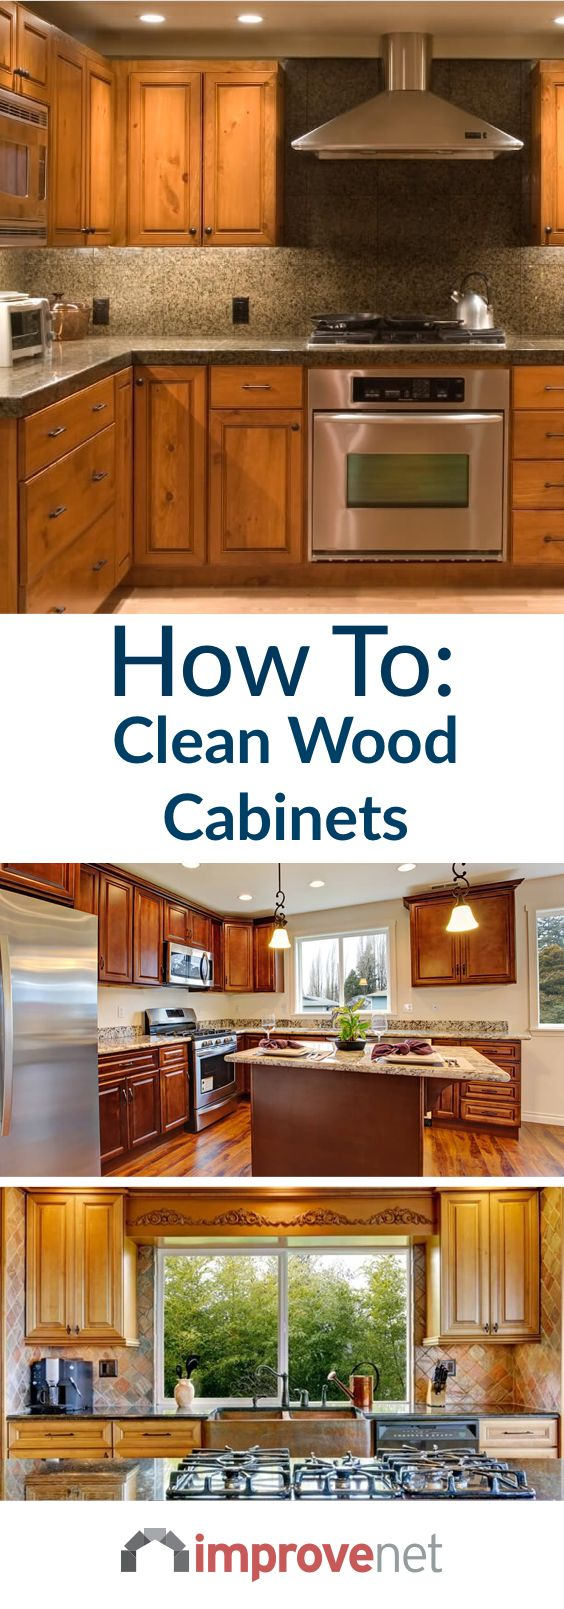 How To Clean Wood Cabinets & Make Them Shine   Cleaning ...